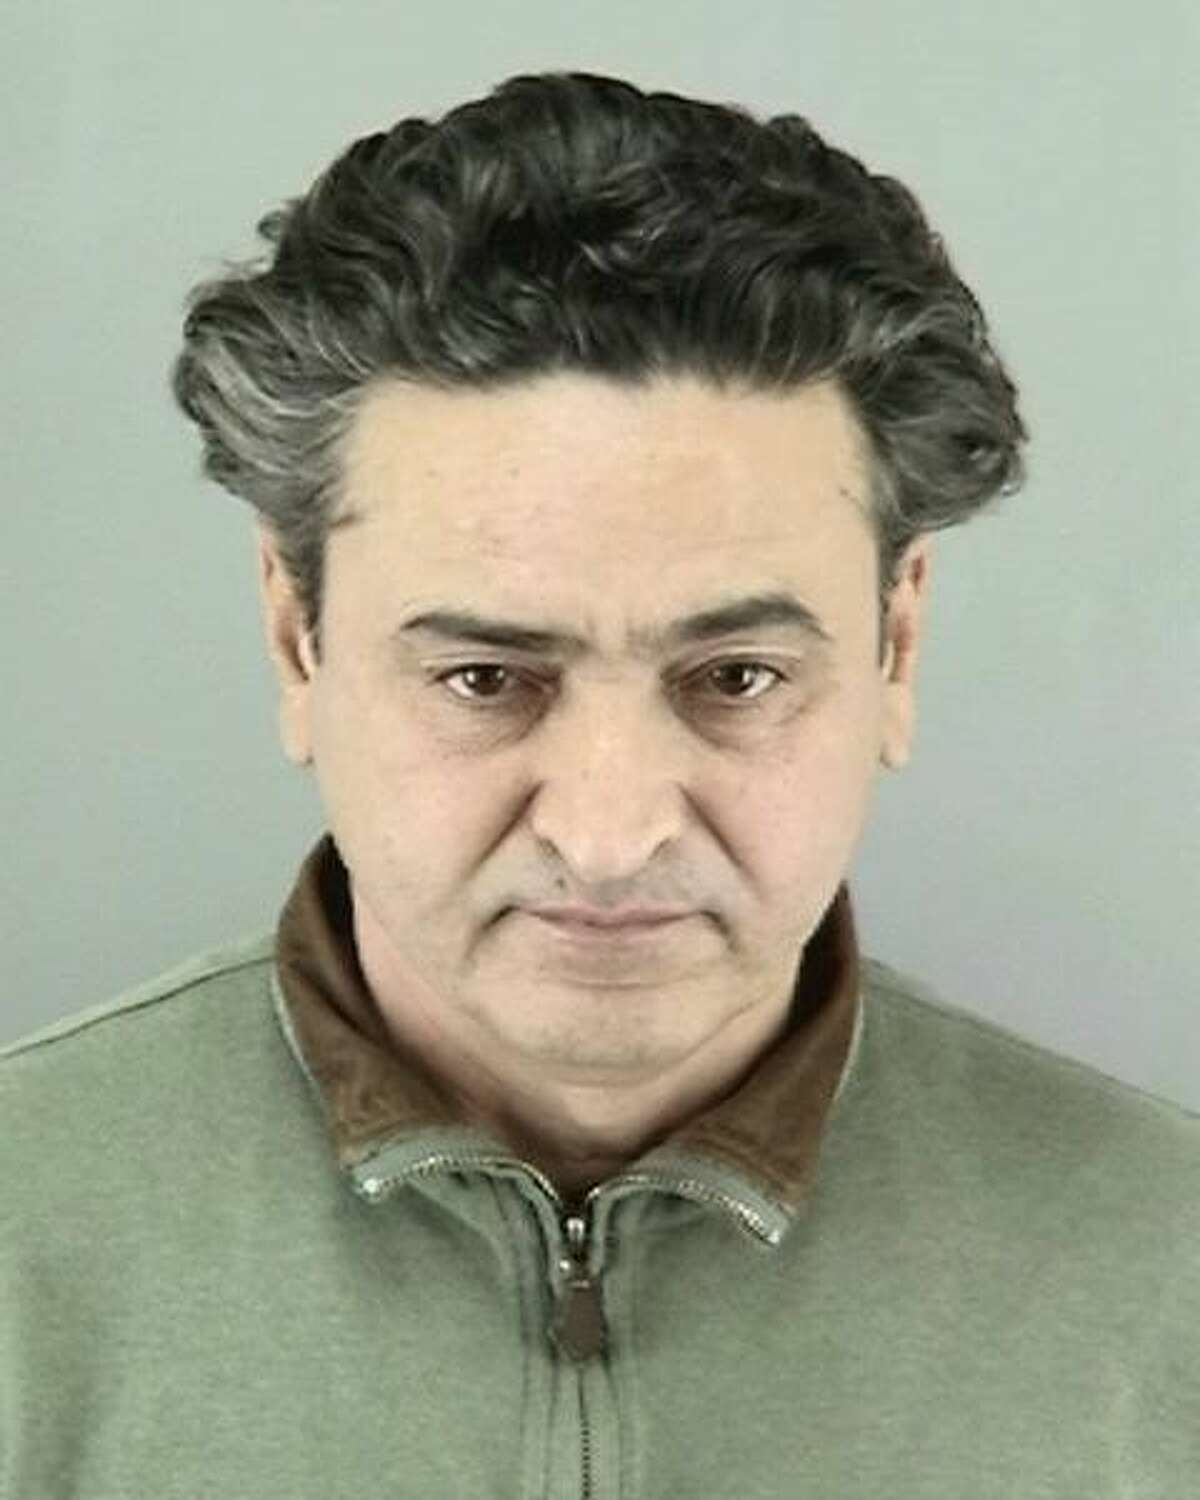 Syed Muzzafar, 57, of Union City, arrested for alleged vehicular manslaughter in connection with a crash Dec. 31, 2013, that killed a 6-year-old pedestrian, Sophia Liu, at Polk and Ellis streets in San Francisco.